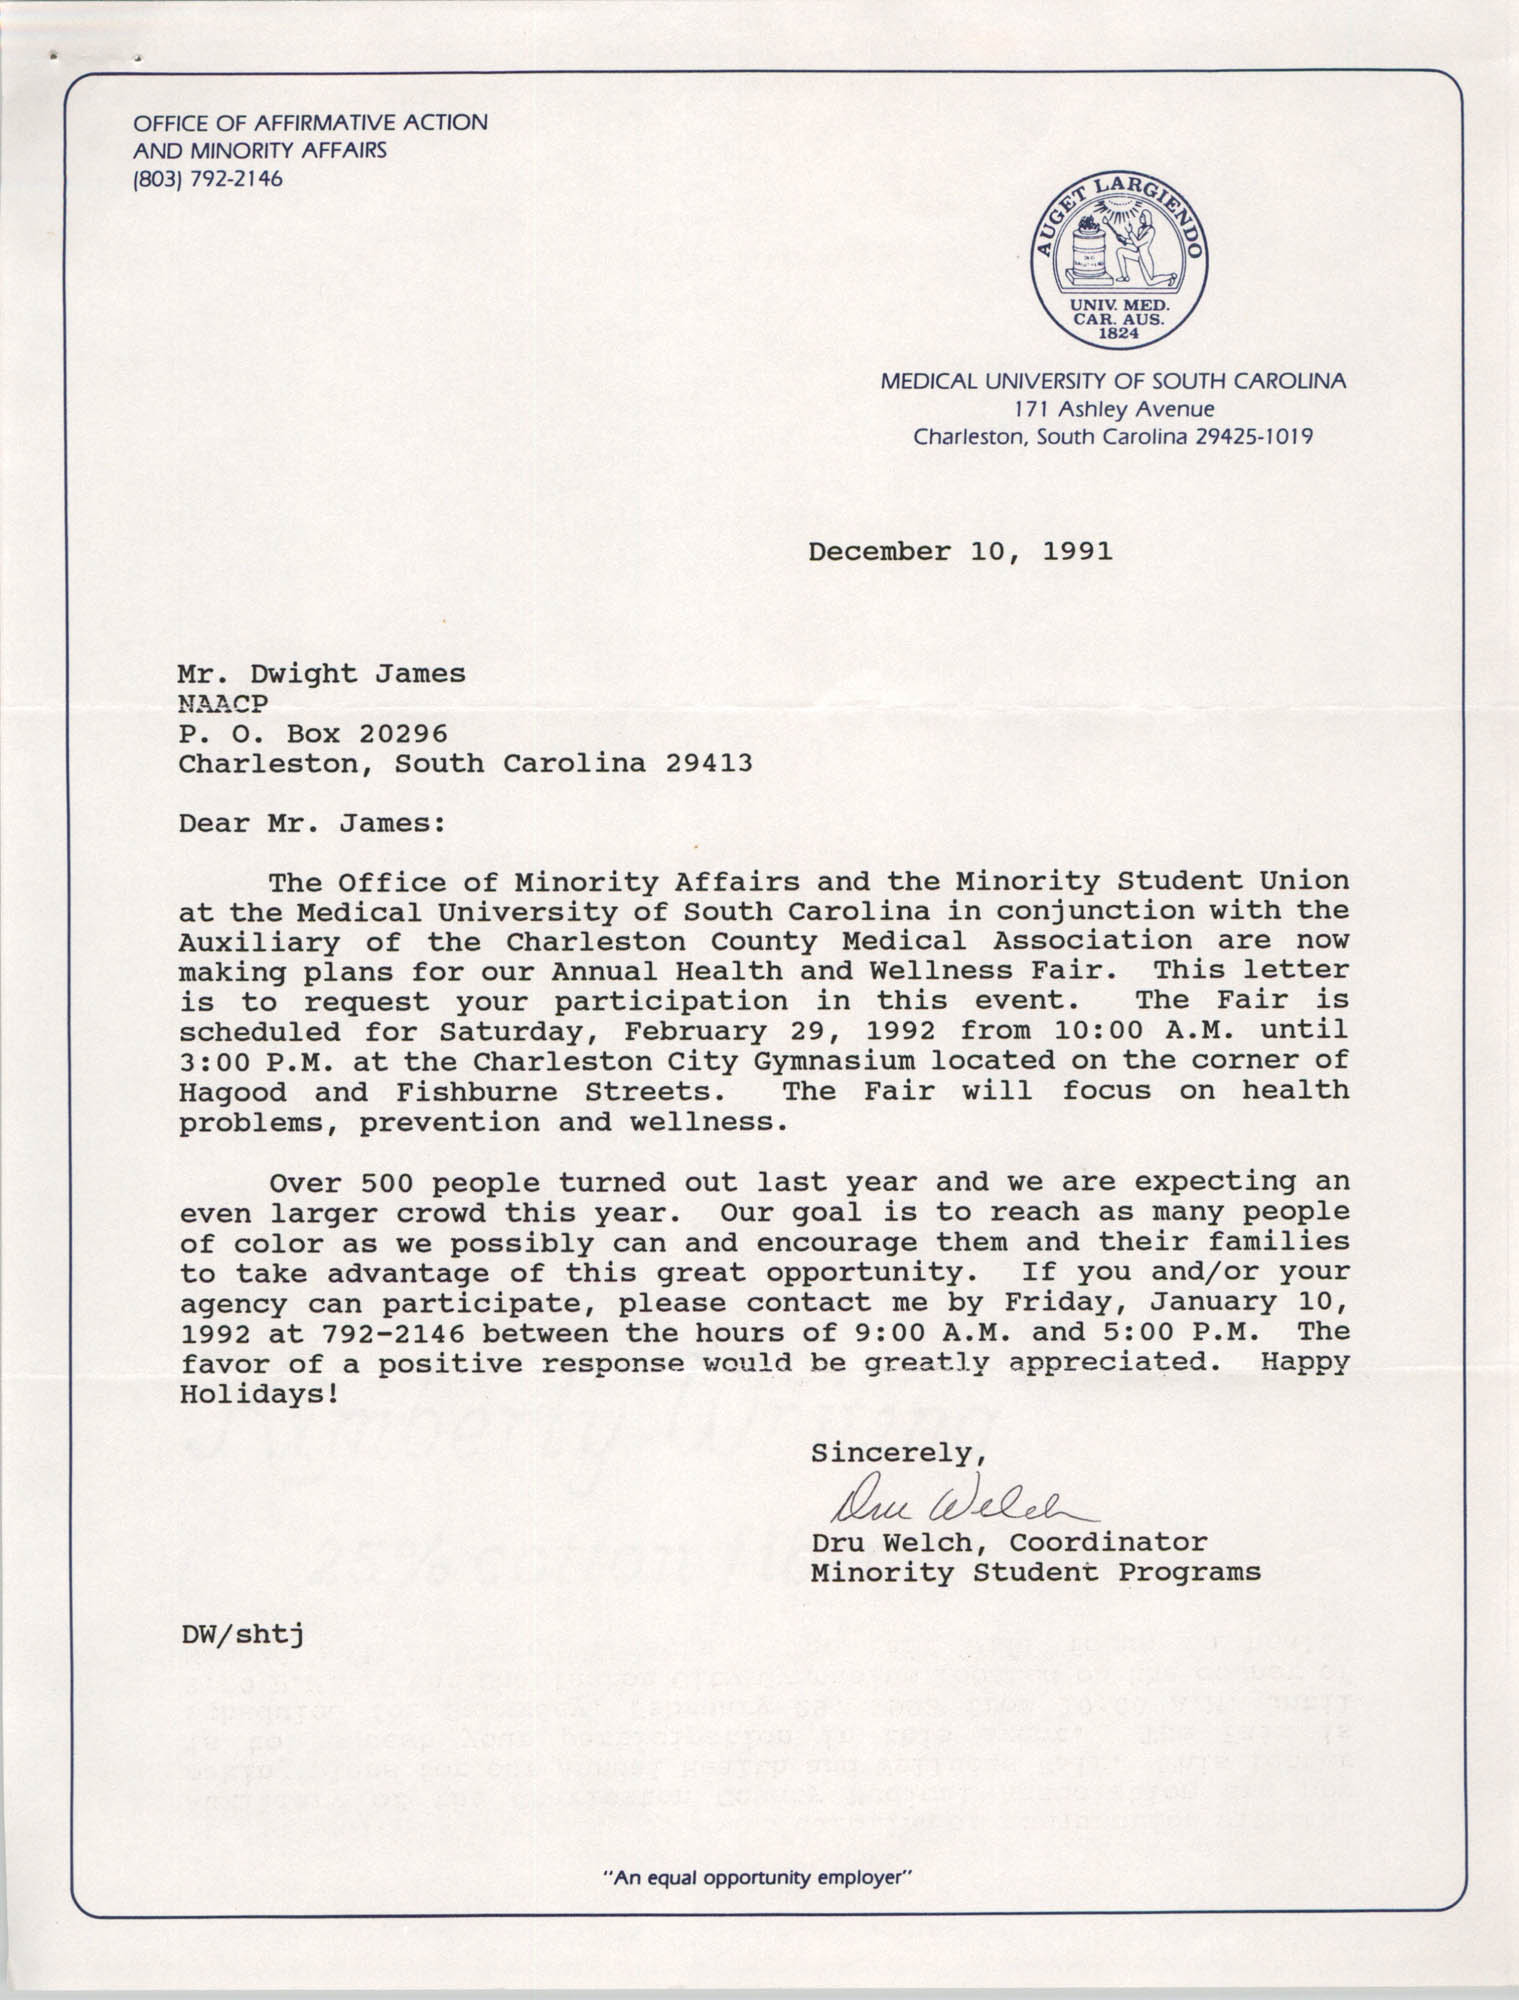 Letter from Dru Welch to Dwight James, December 10, 1991